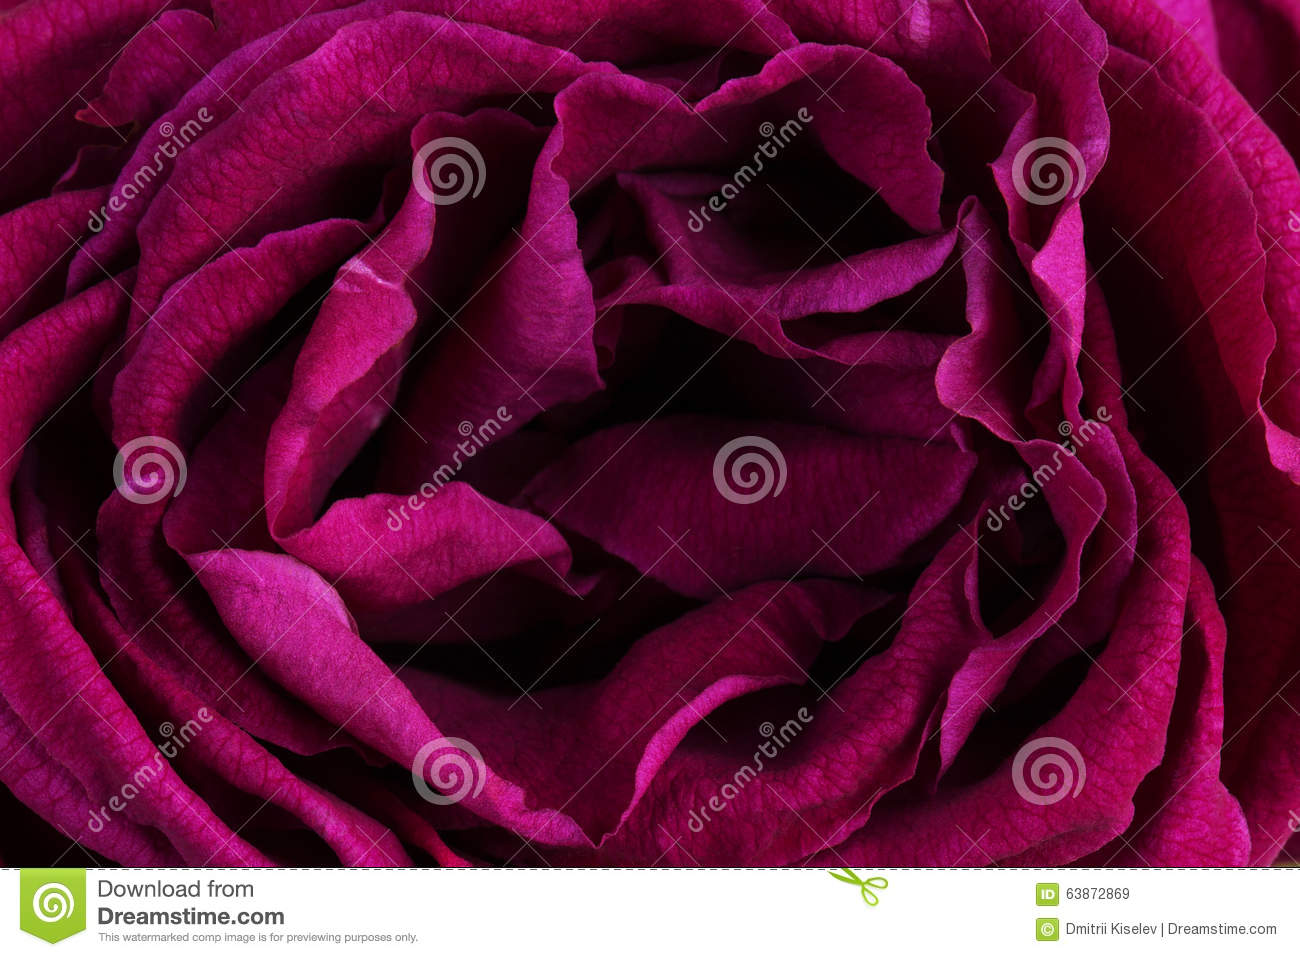 Related Keywords & Suggestions for Rose Plant With Thorns Clipart.